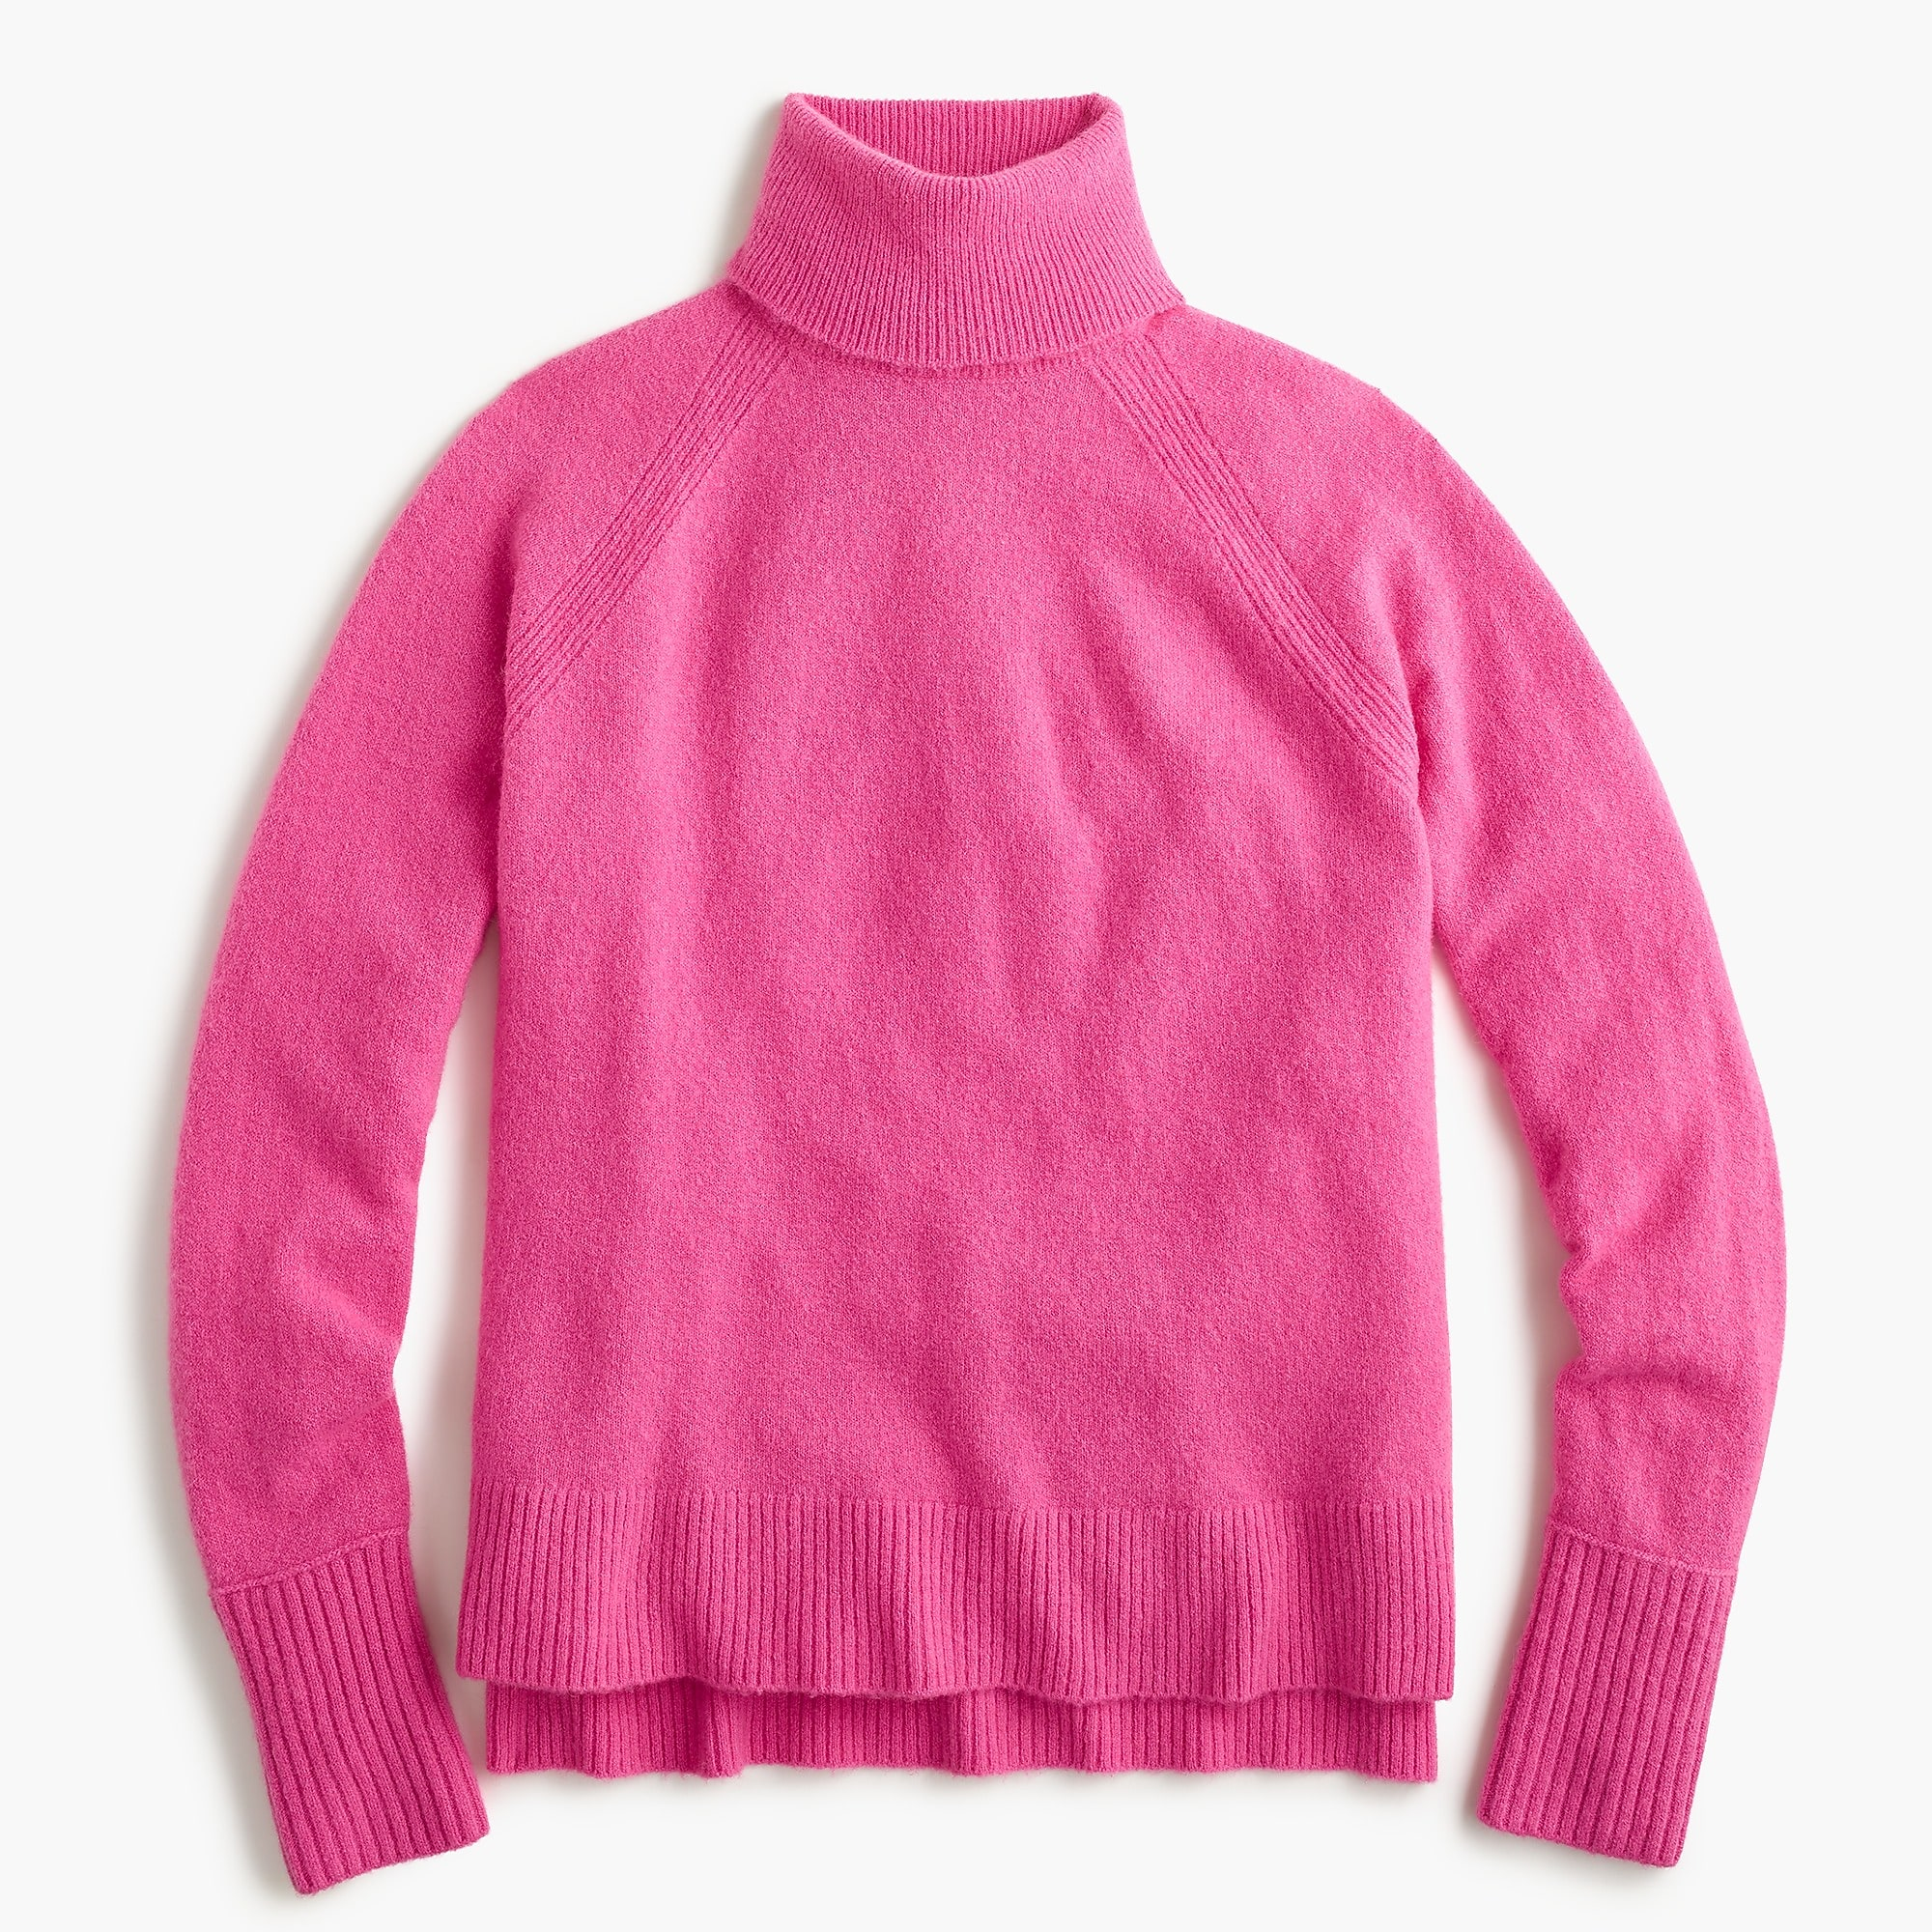 Cozy Turtleneck Sweater